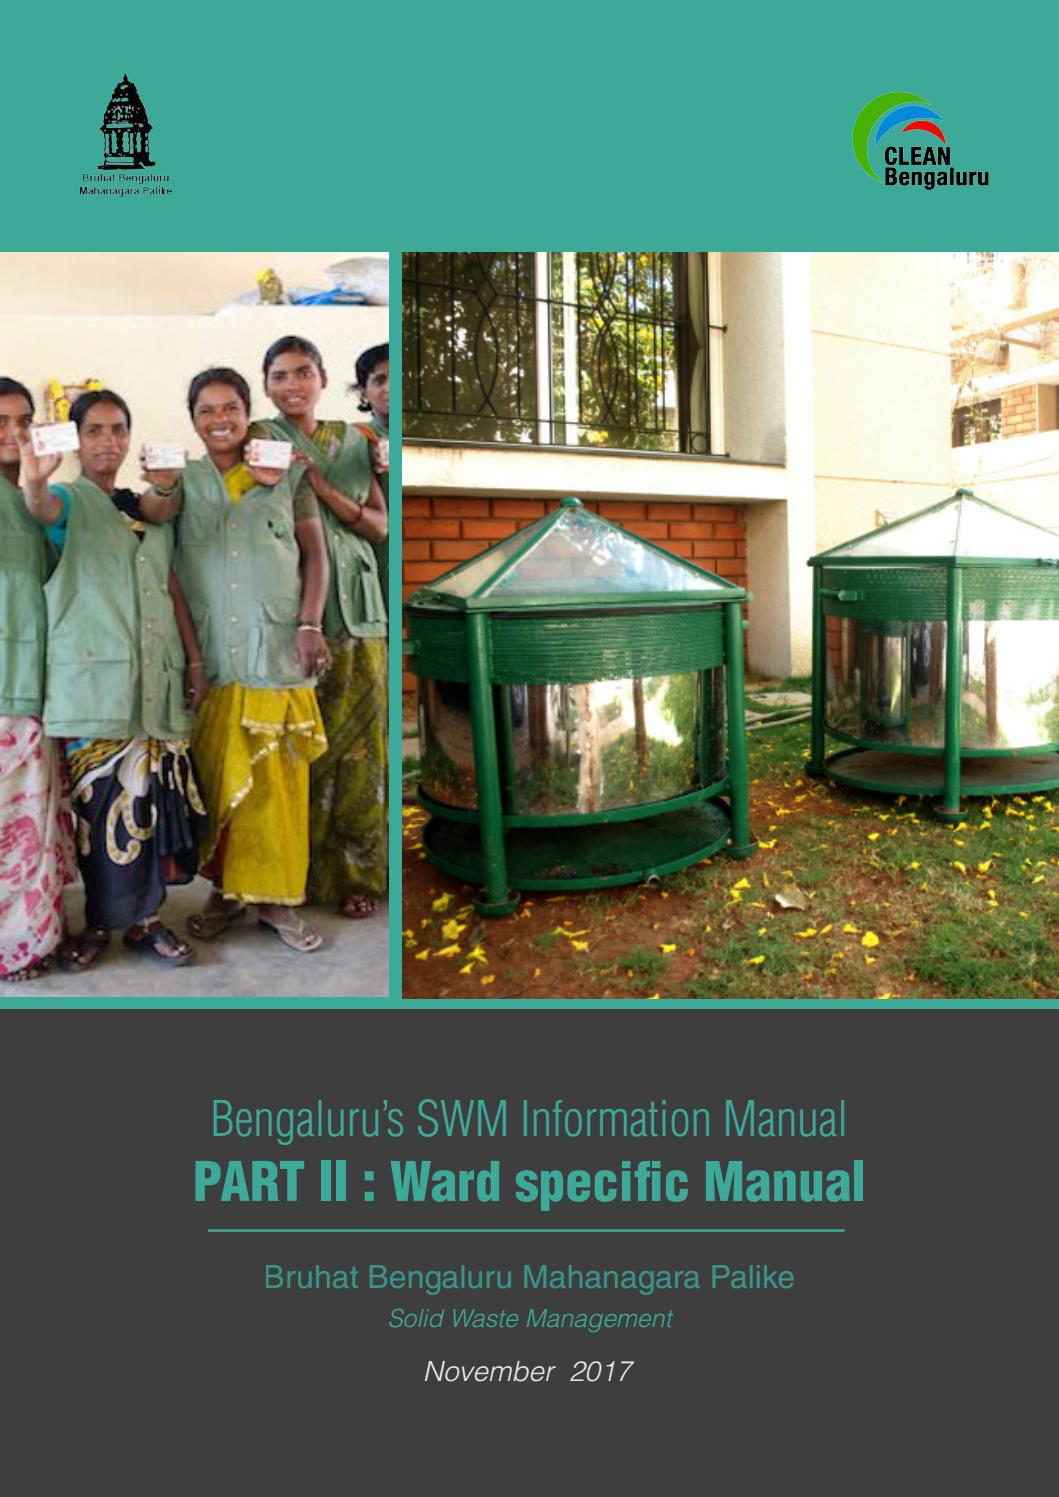 Swm information manual part ii ward specific manual (english) by